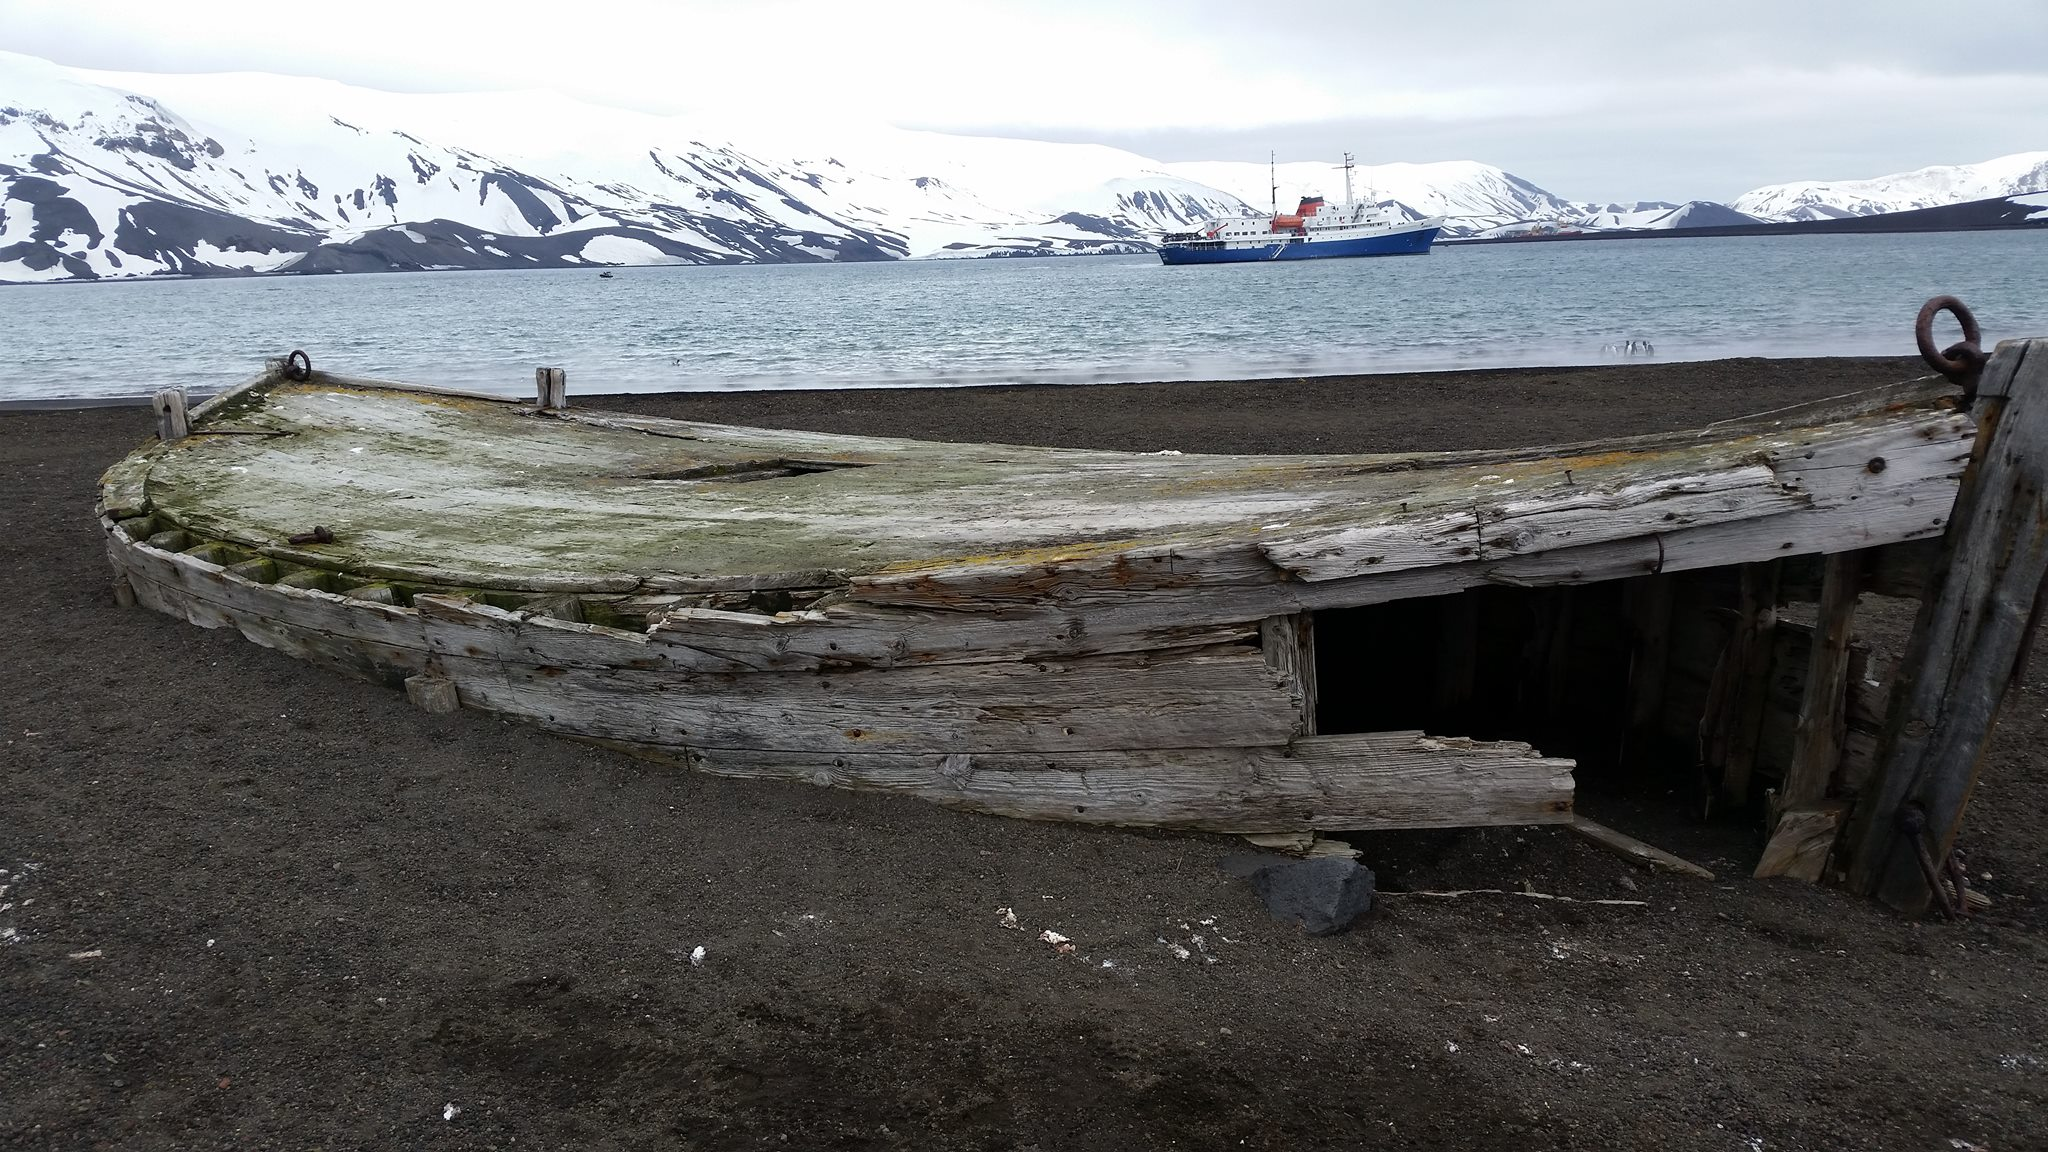 Taken on Deception Island, which is also known as the whales graveyard. This island is really interesting because it has an active underwater volcano.